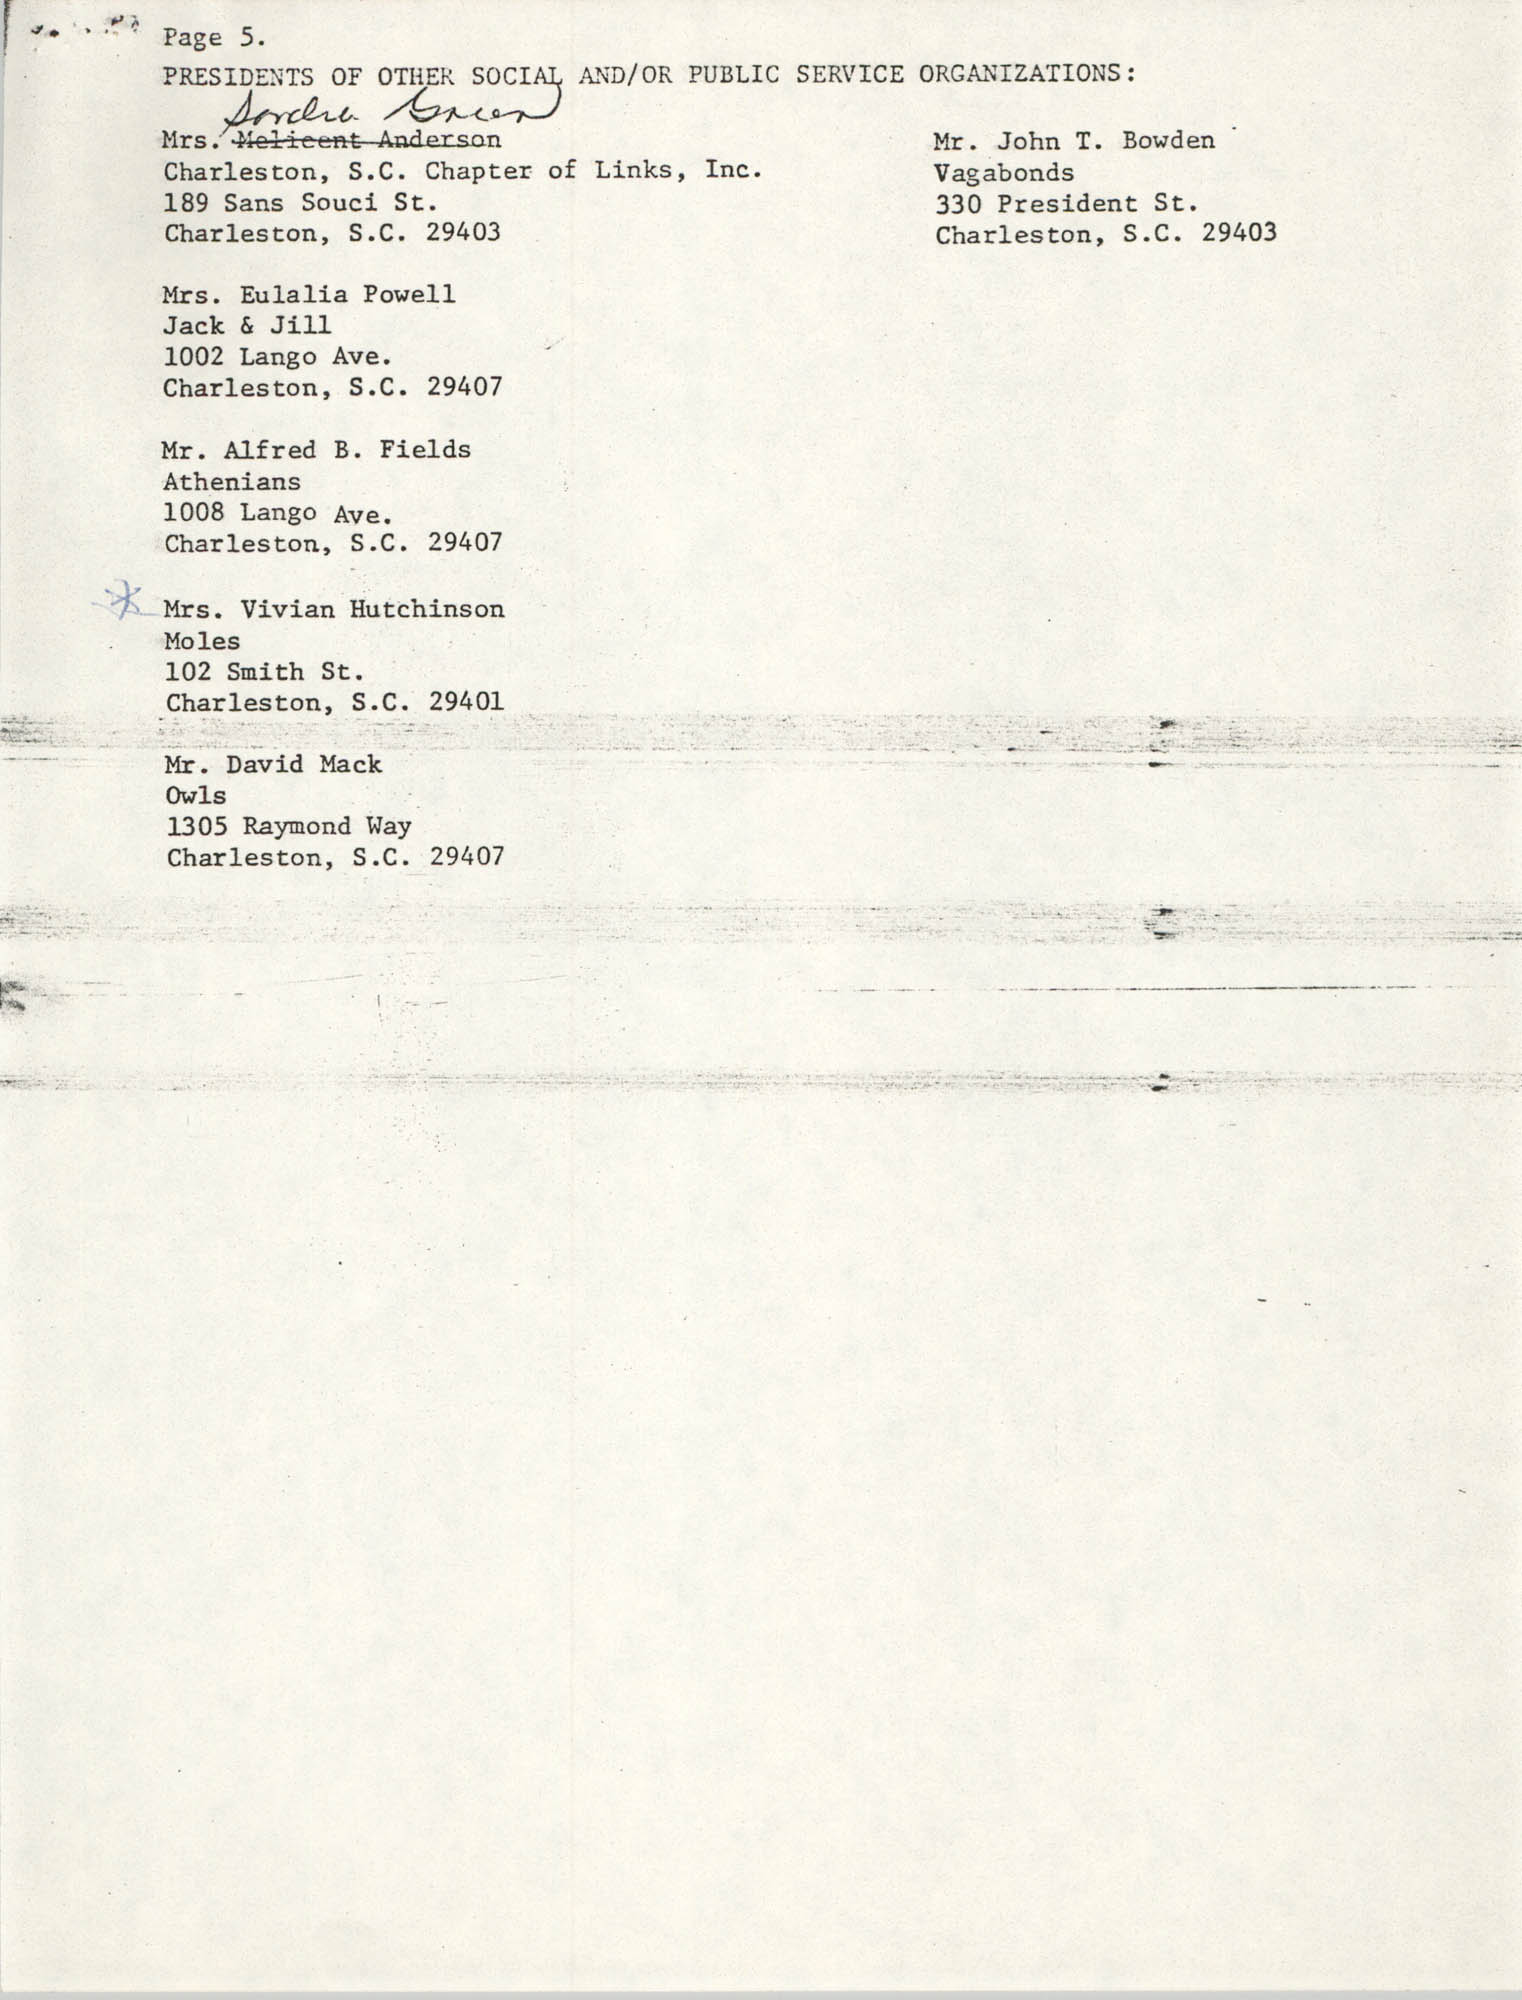 Memorandum, July 18, 1979, Page 5